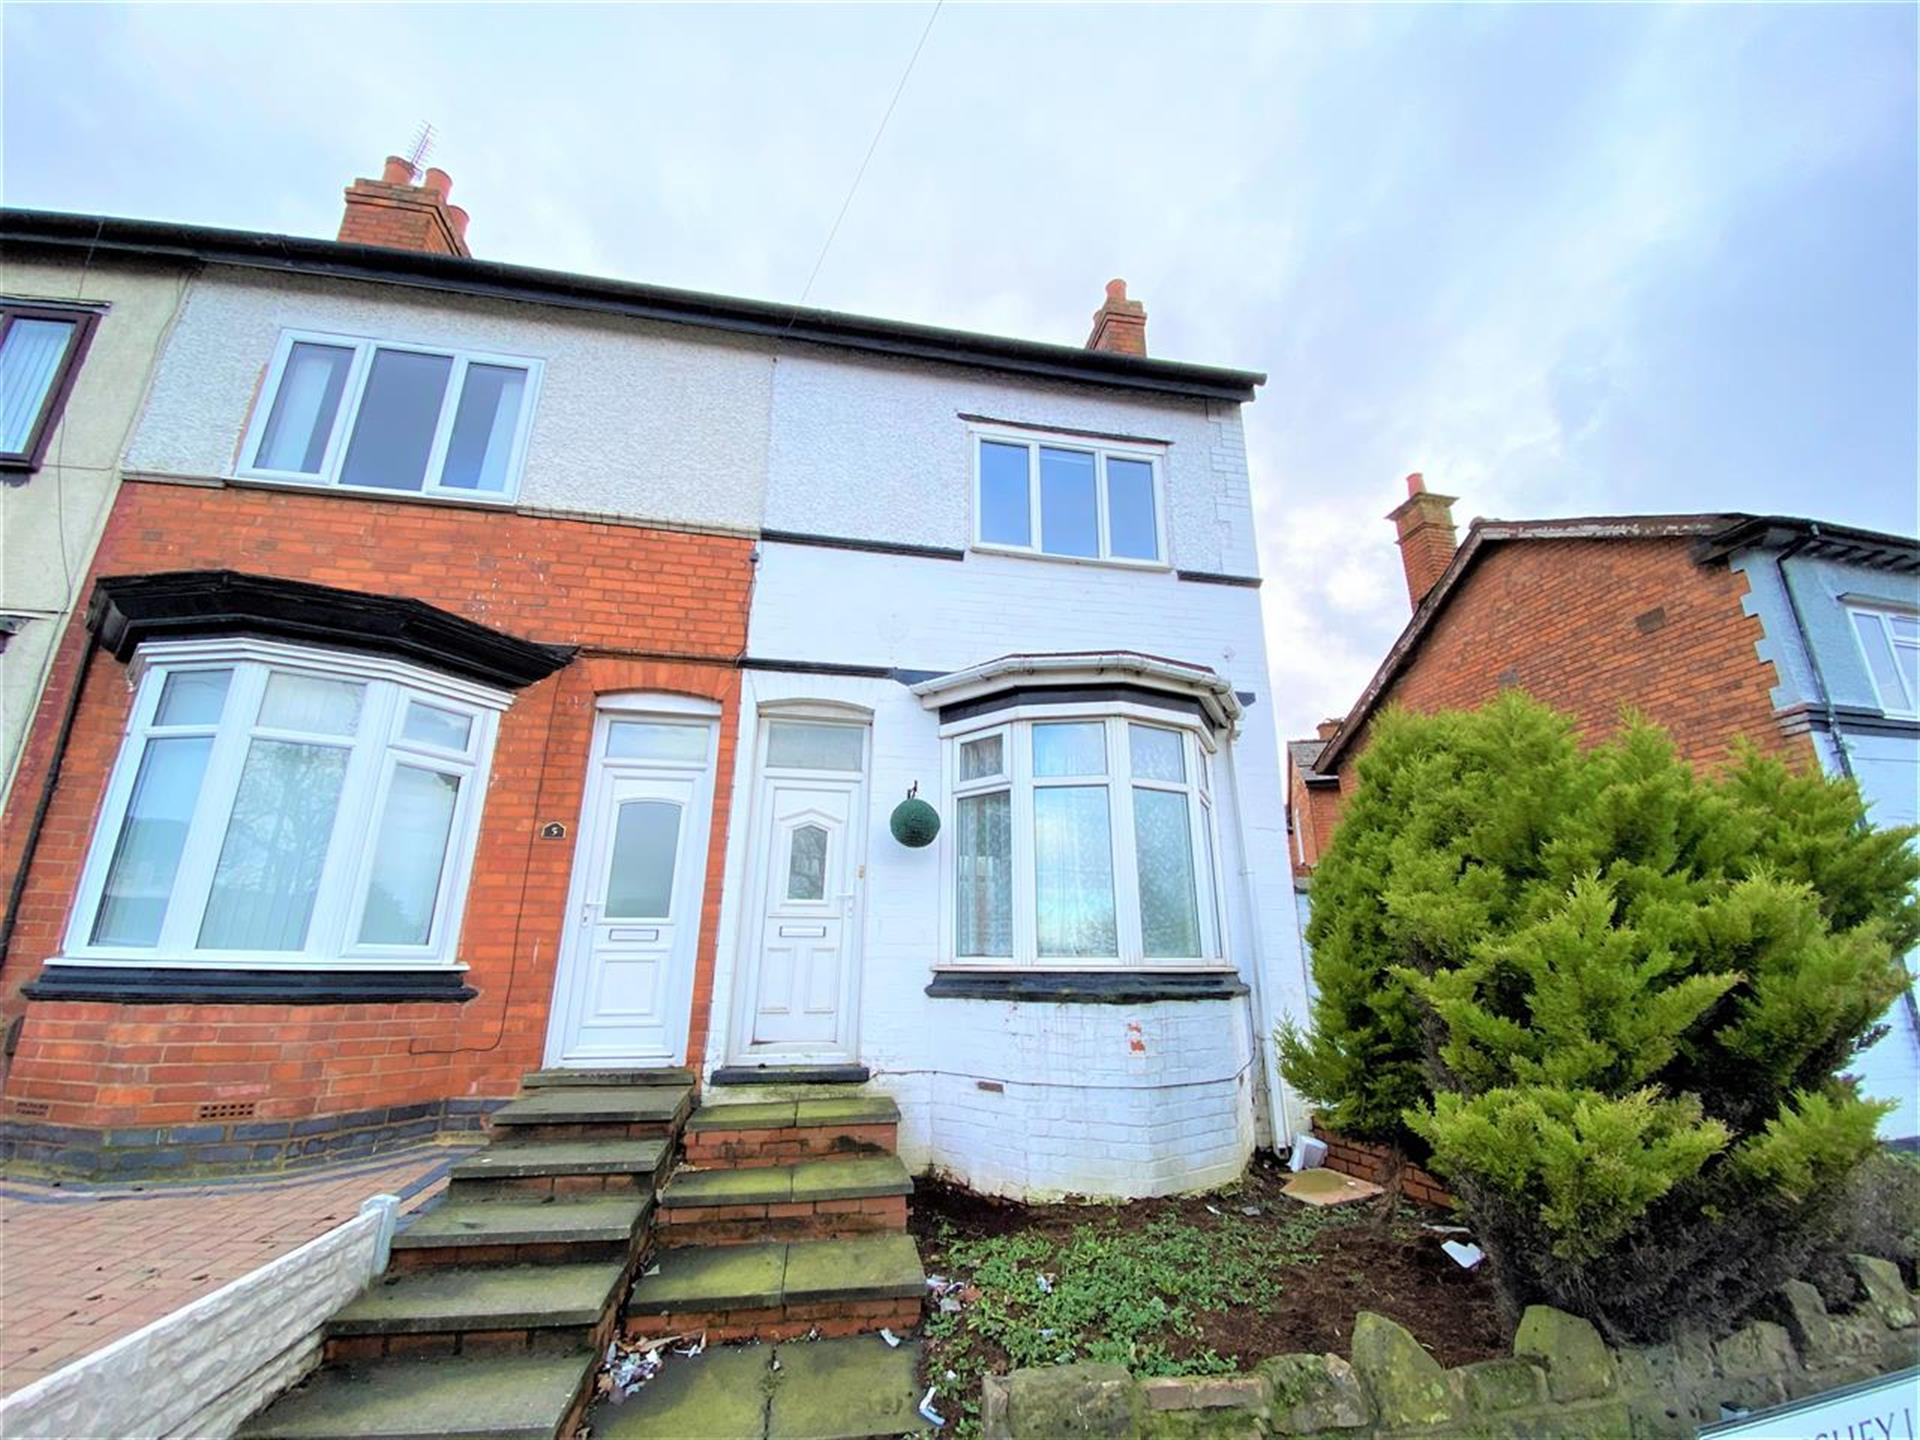 2 Bedroom End Terraced House For Sale - Main Picture